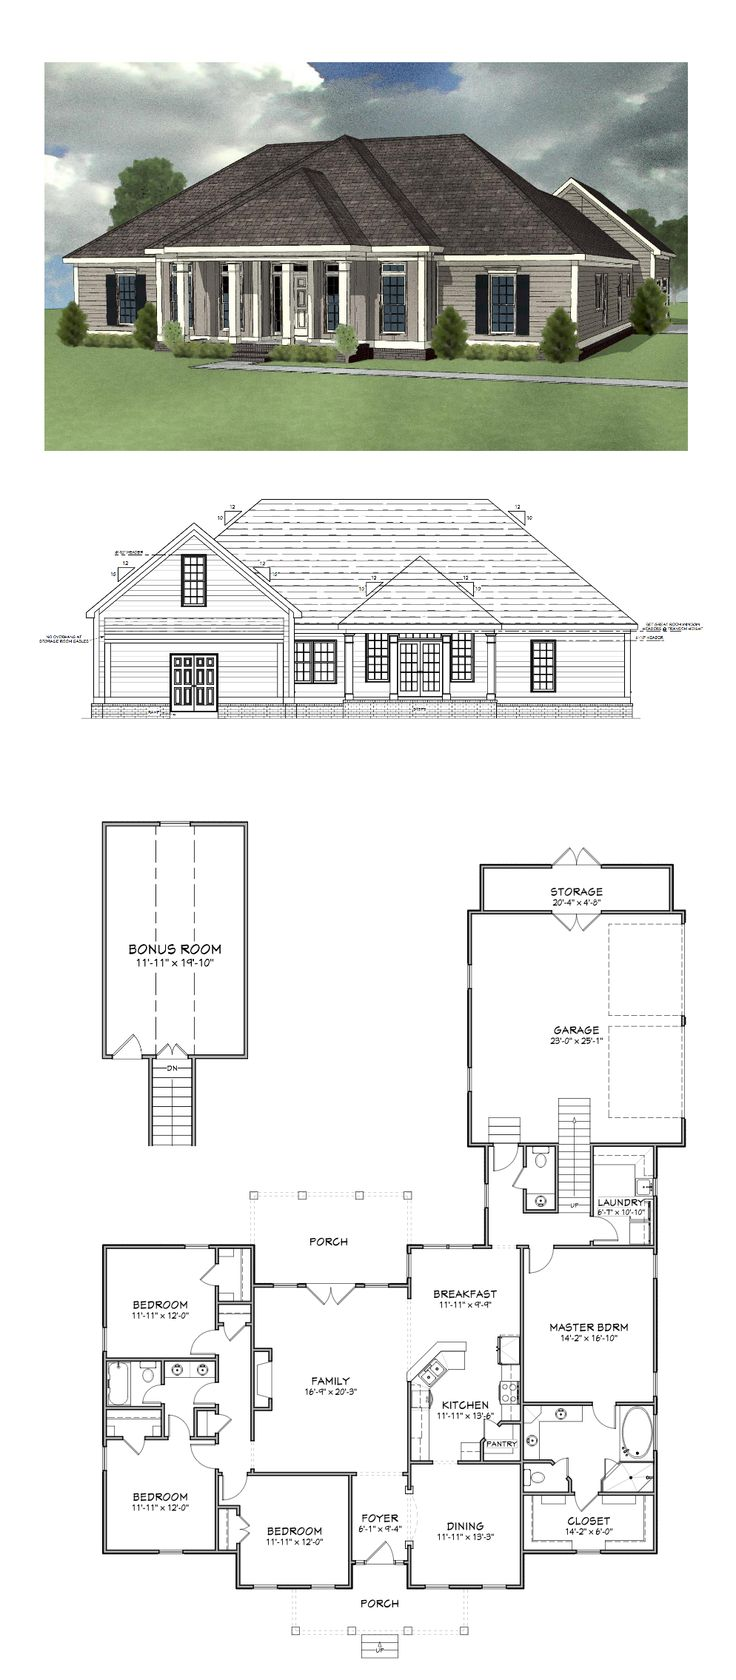 17 Best House Plans 2000 2800 Sq Ft Images On Pinterest